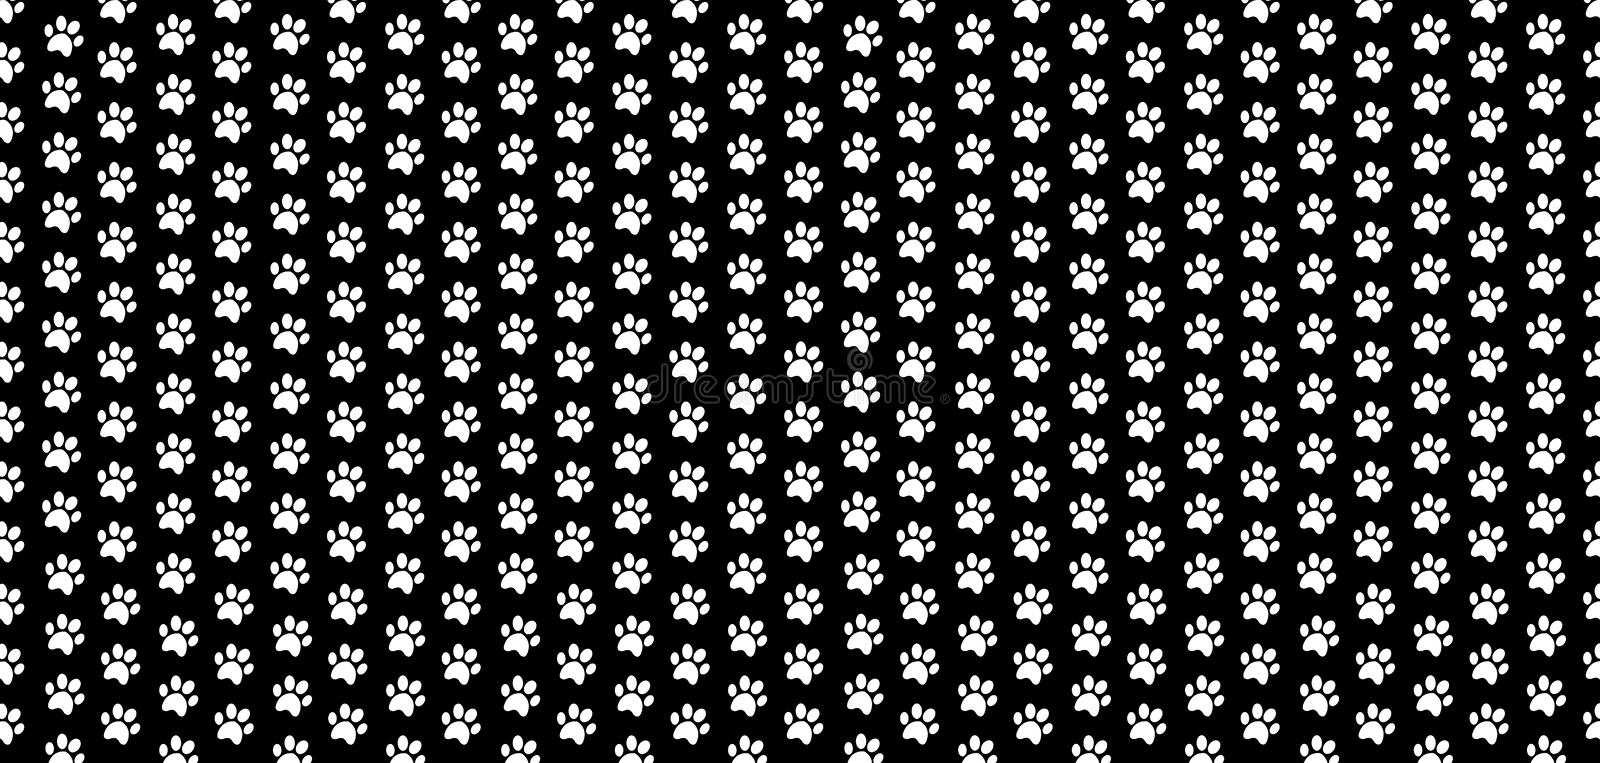 Rectangle seamless banner with white animals paw prints on black background. Rectangle seamless pattern of white animal paw prints on black background. Vector stock illustration